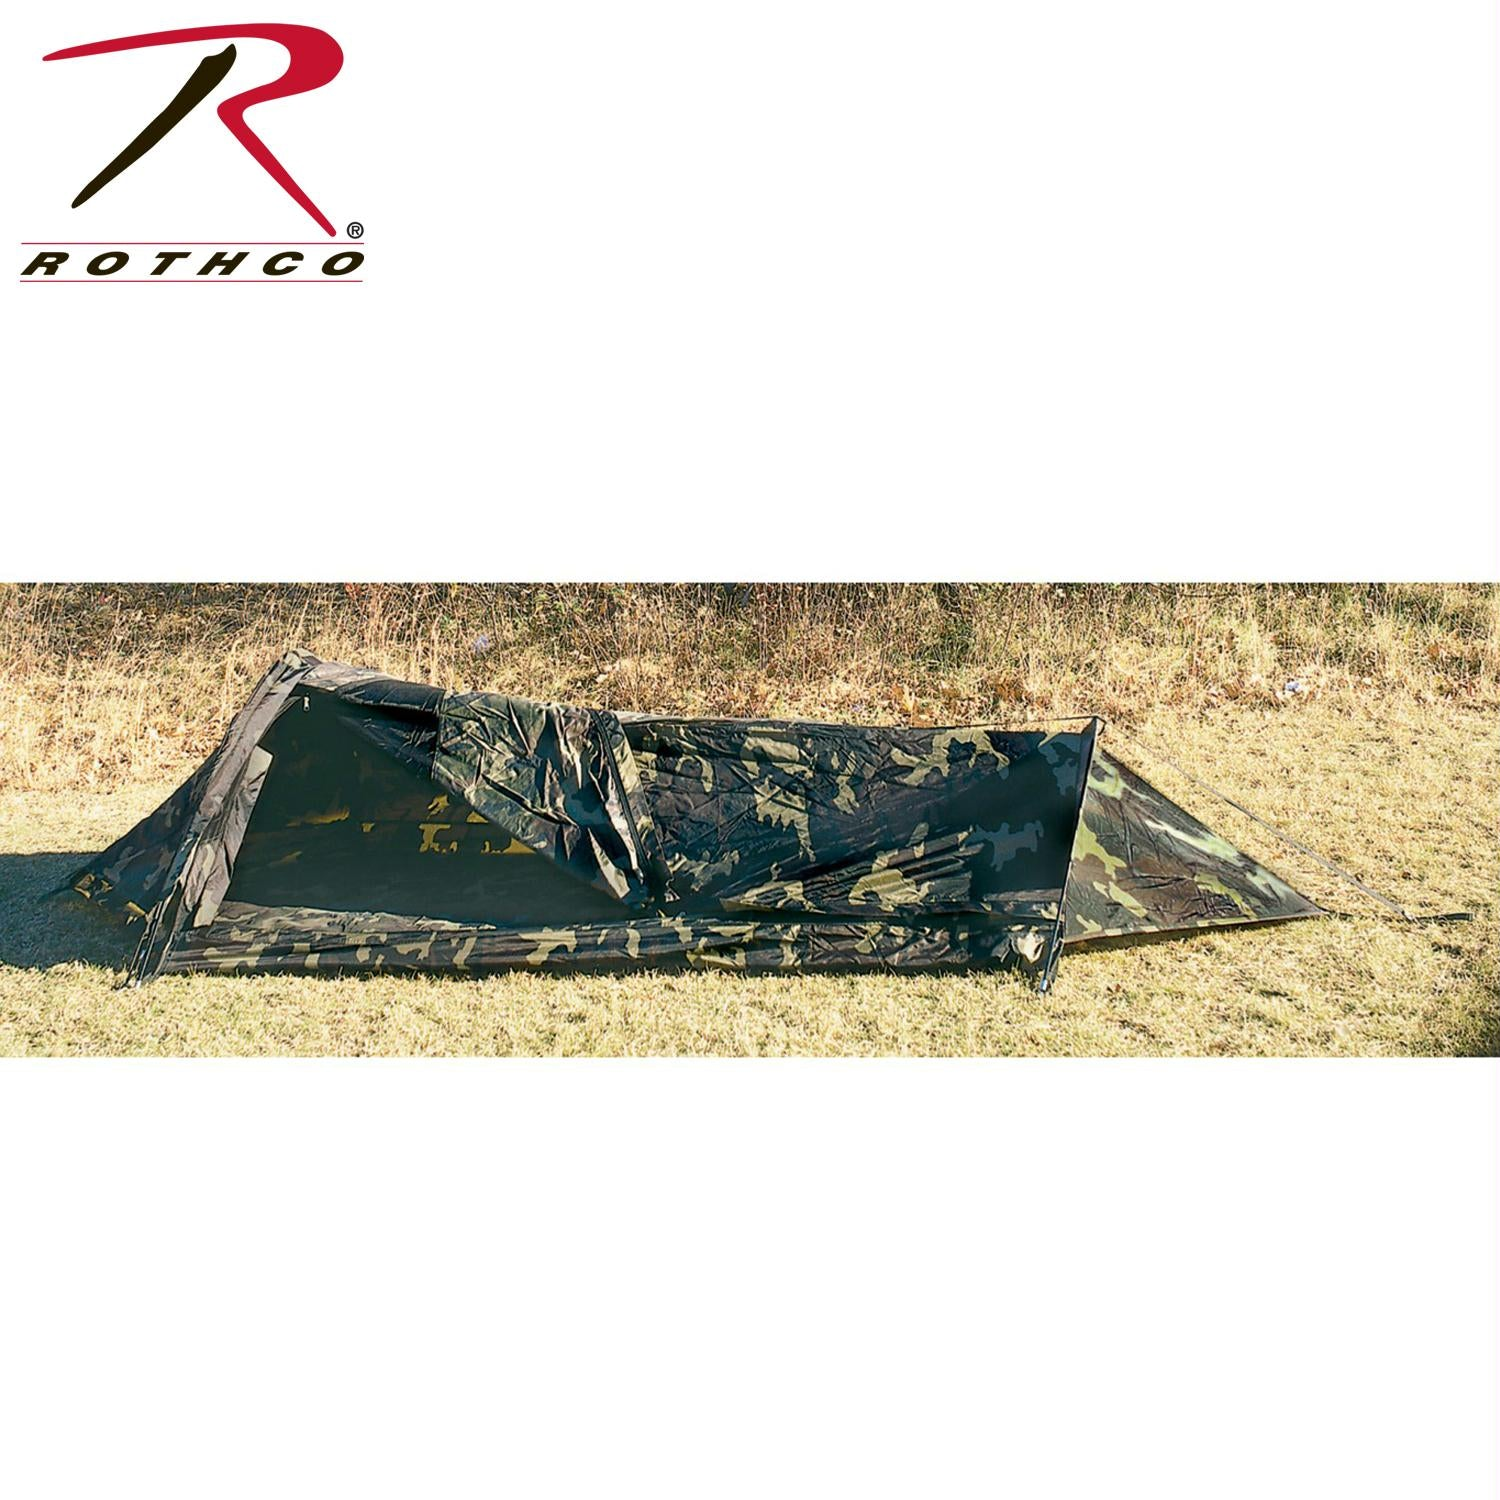 Rothco G.I Type Camouflage Bivouac Shelter - Woodland Camo / 6 Inches